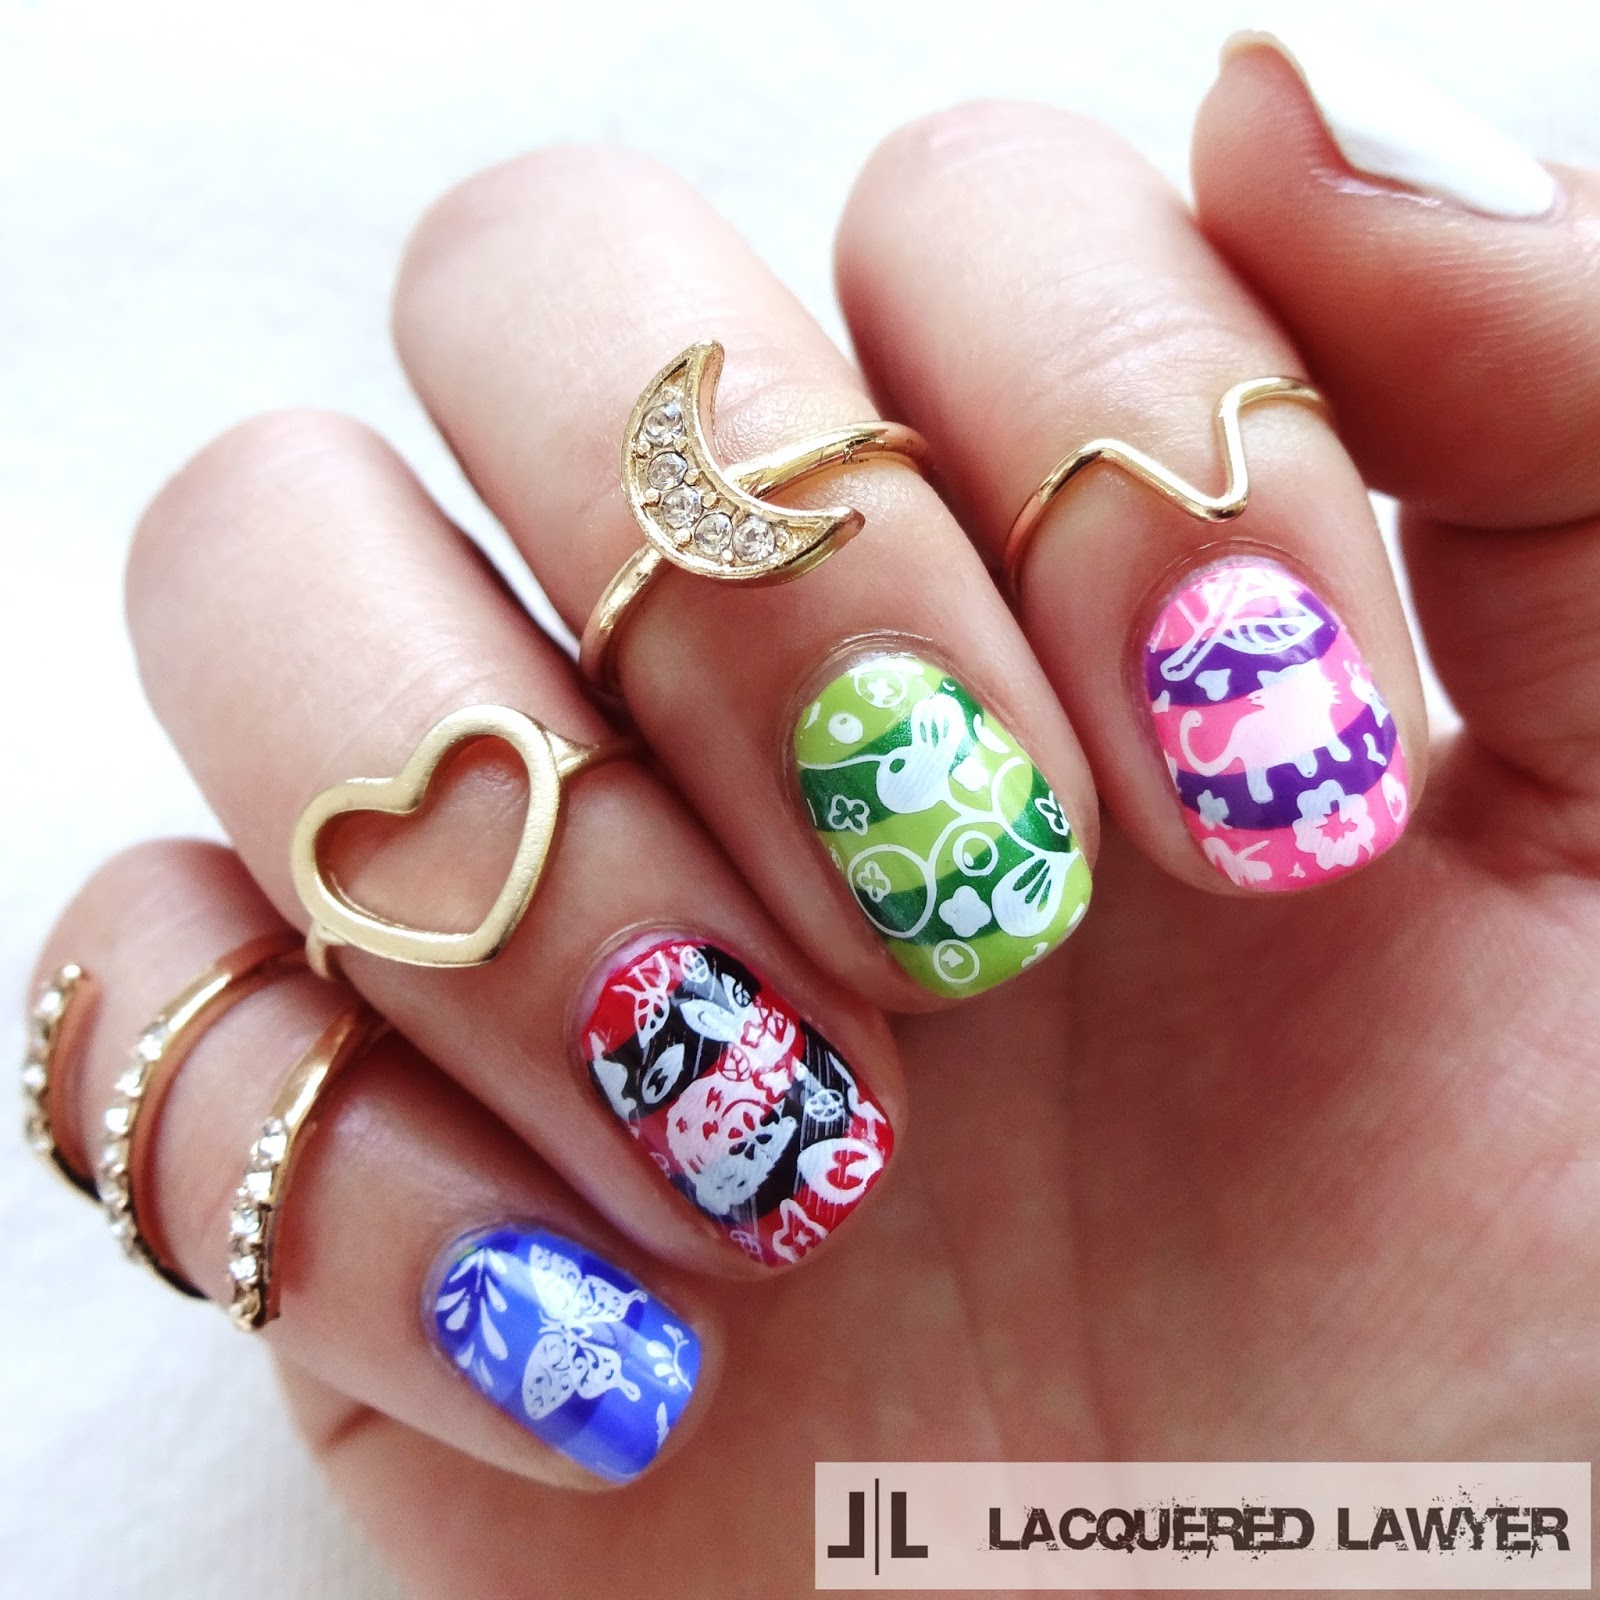 Lacquered Lawyer | Nail Art Blog: Alice in Wonderland